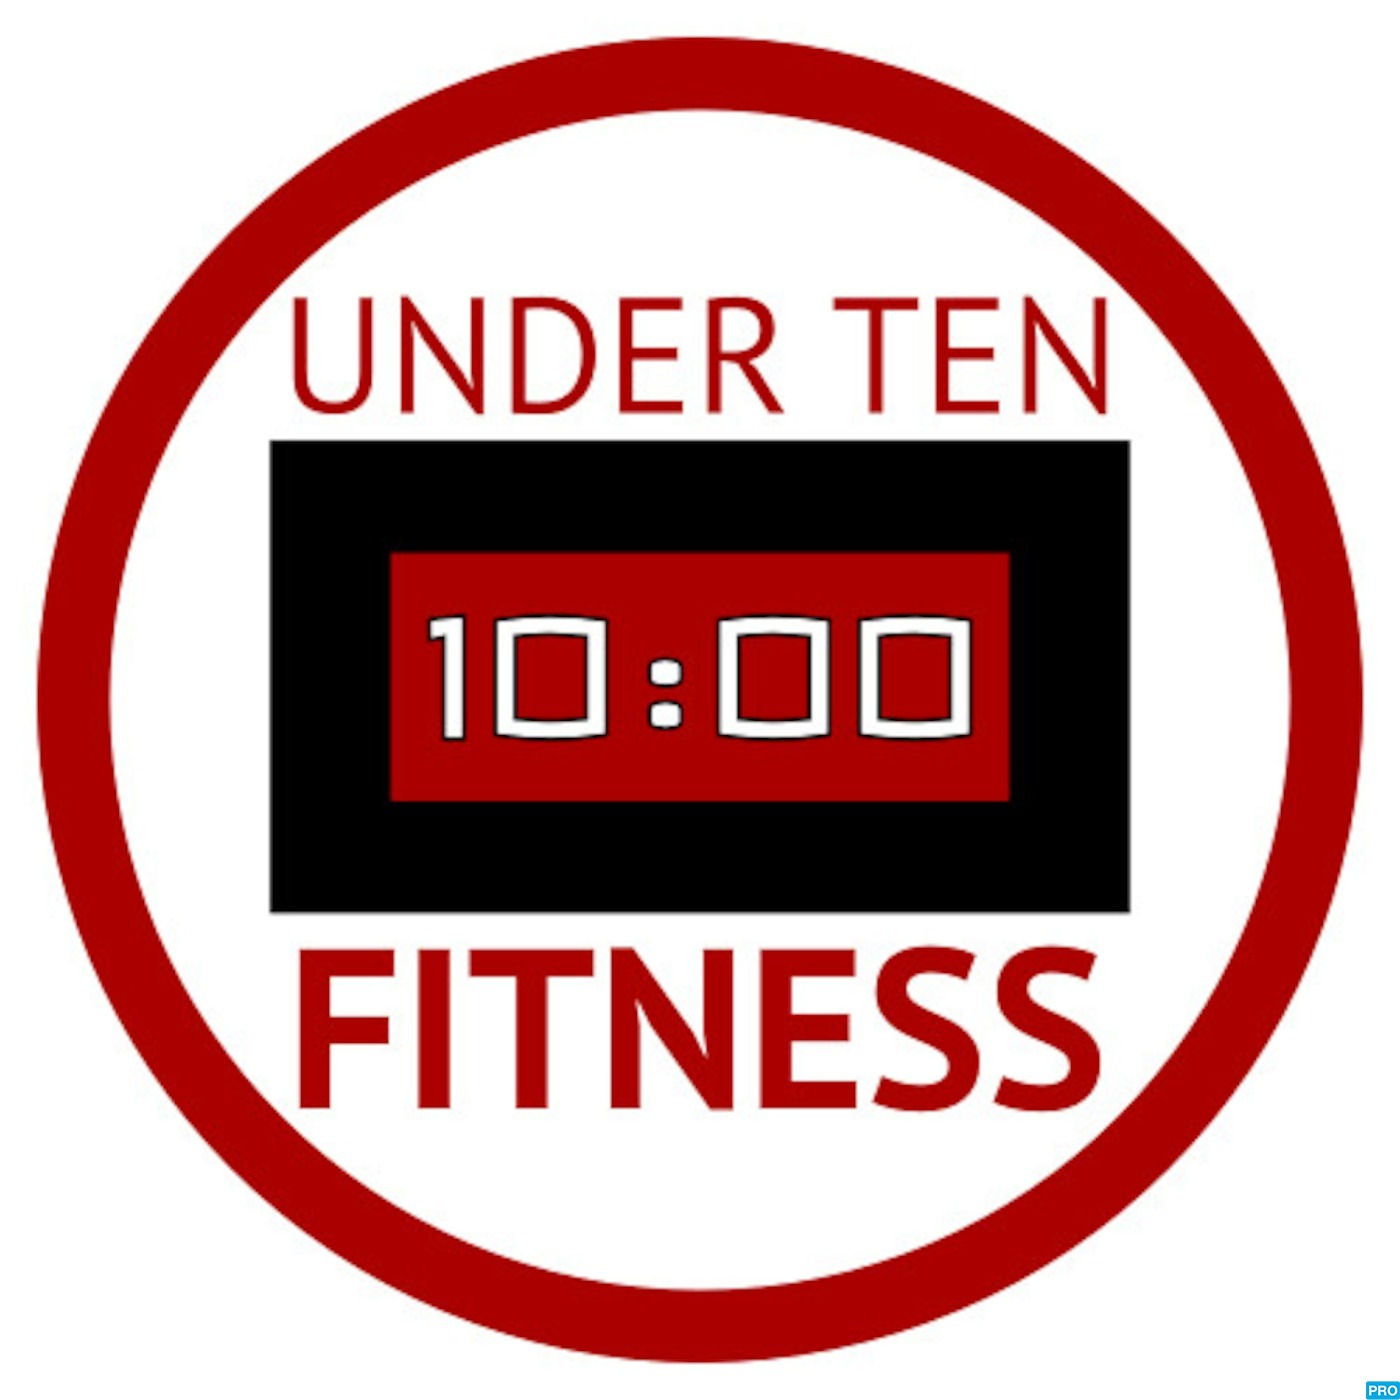 Under Ten Fitness | Health & Fitness motivation to help keep you in the gym / making gains / getting results and working out